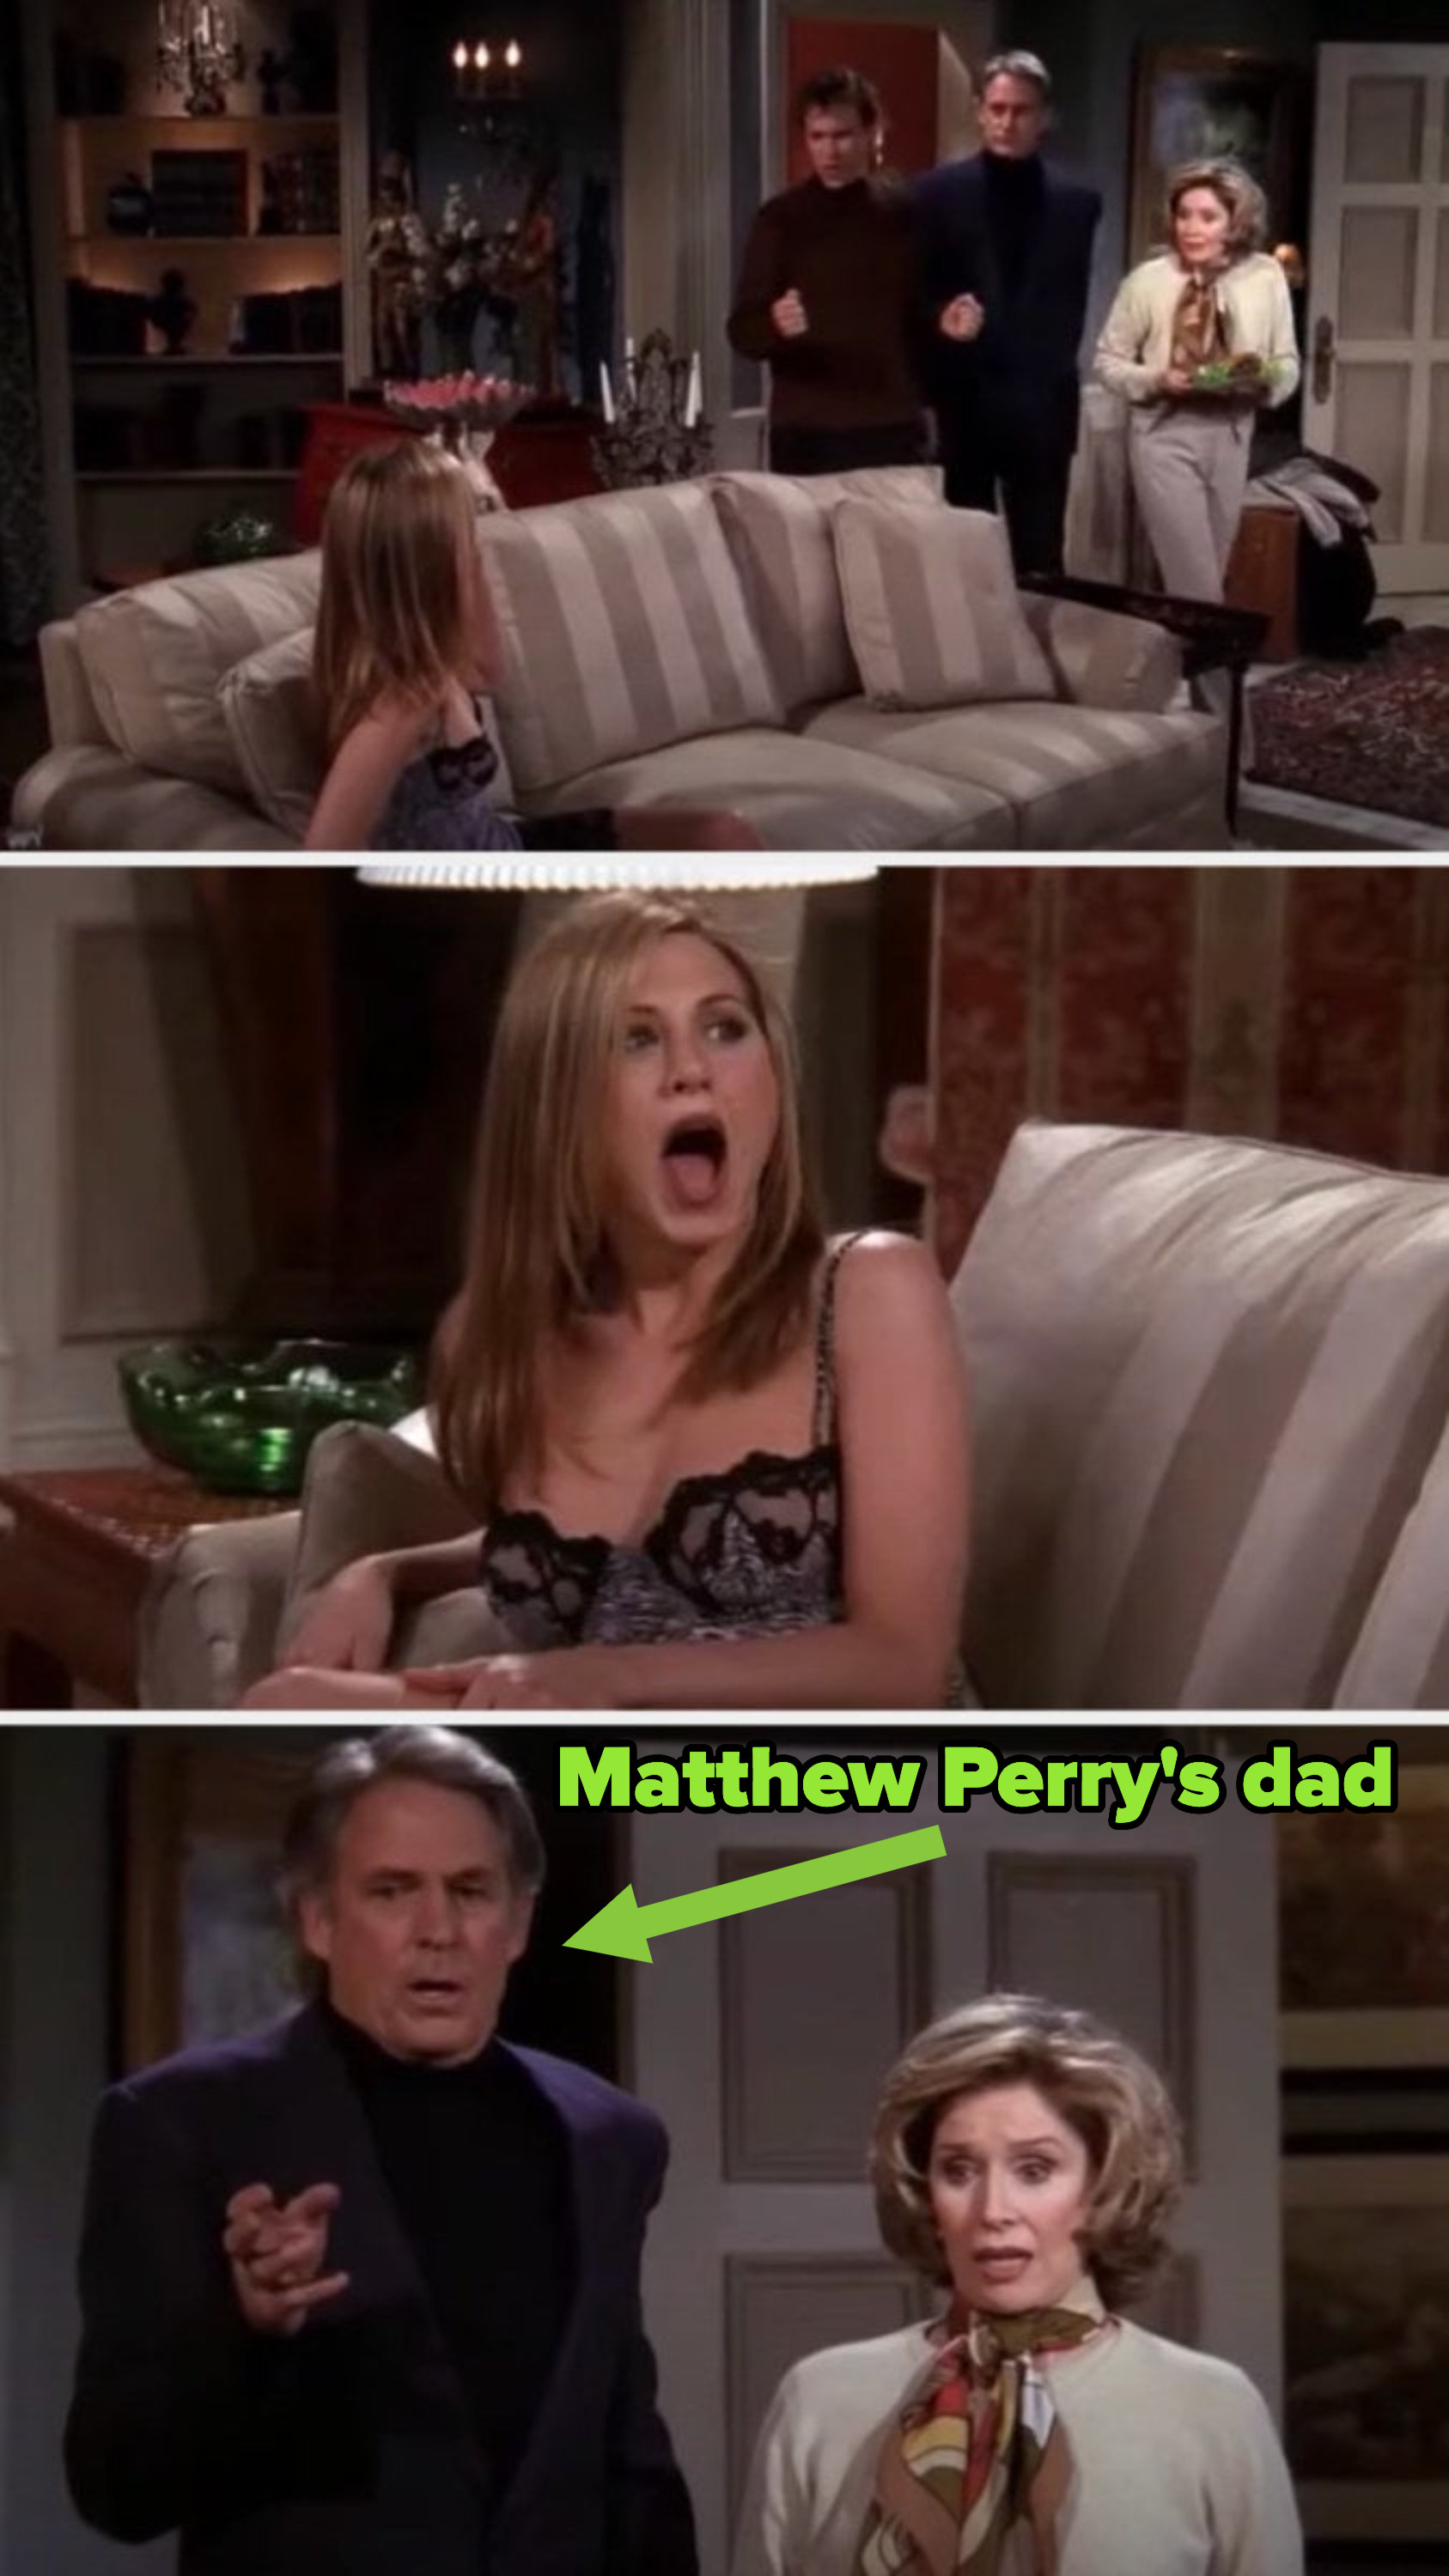 "Josh's parents walk in and look shocked as Rachel is in lingerie — Josh's dad is labeled ""Matthew Perry's dad"""